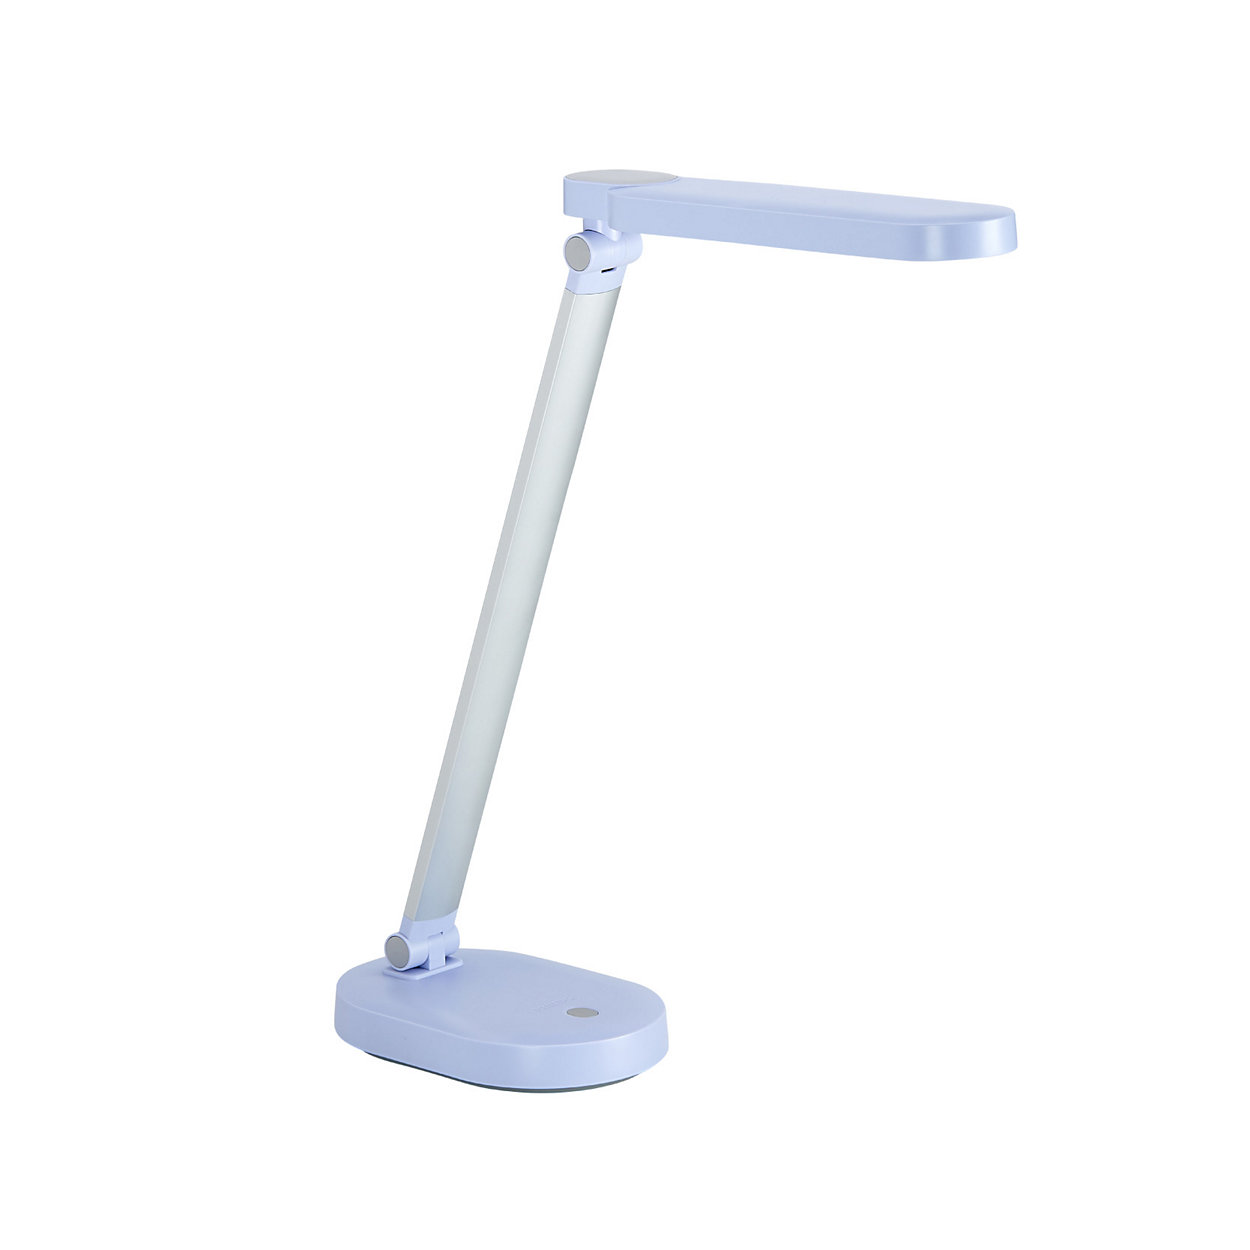 Reliable desk lighting for more convenience